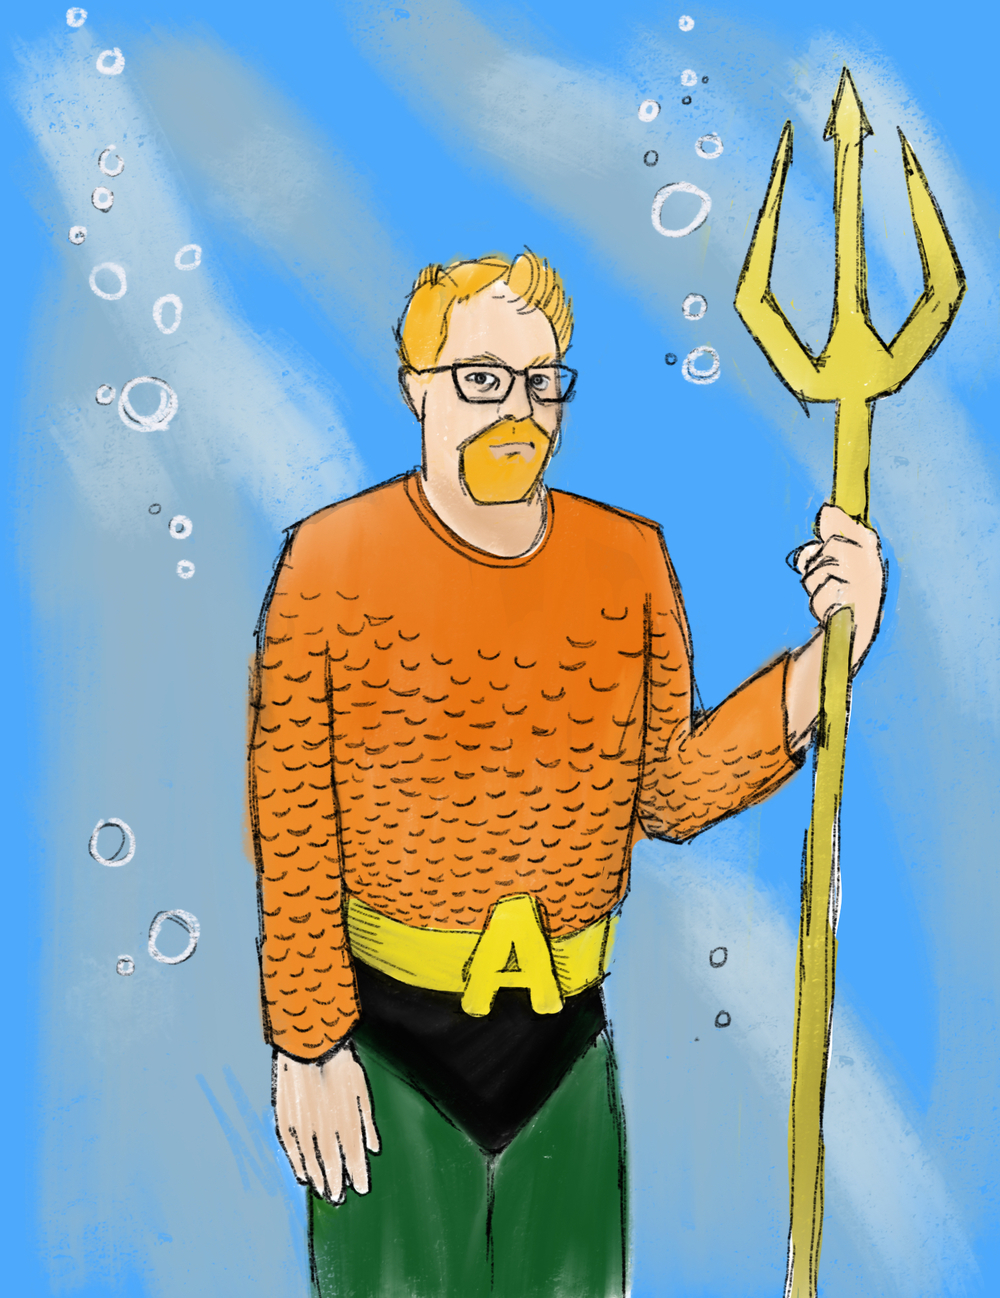 Todd Petersen as Aquaman